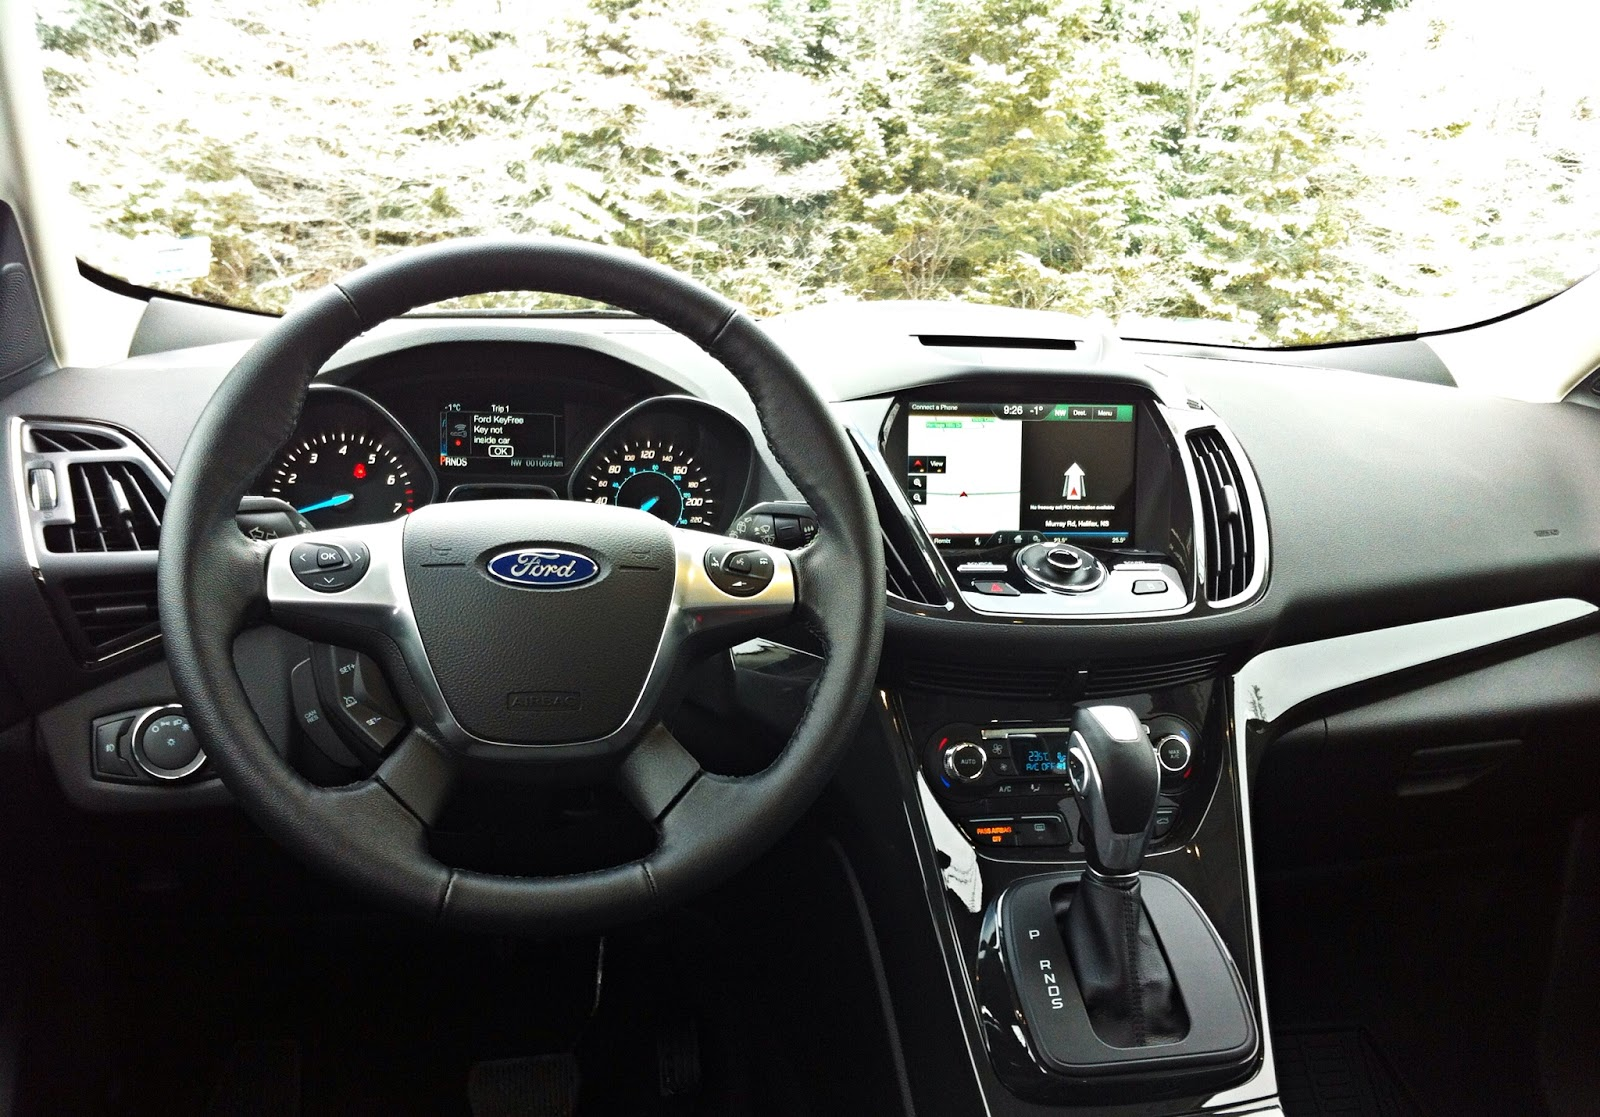 2015 Ford Escape Titanium AWD interior